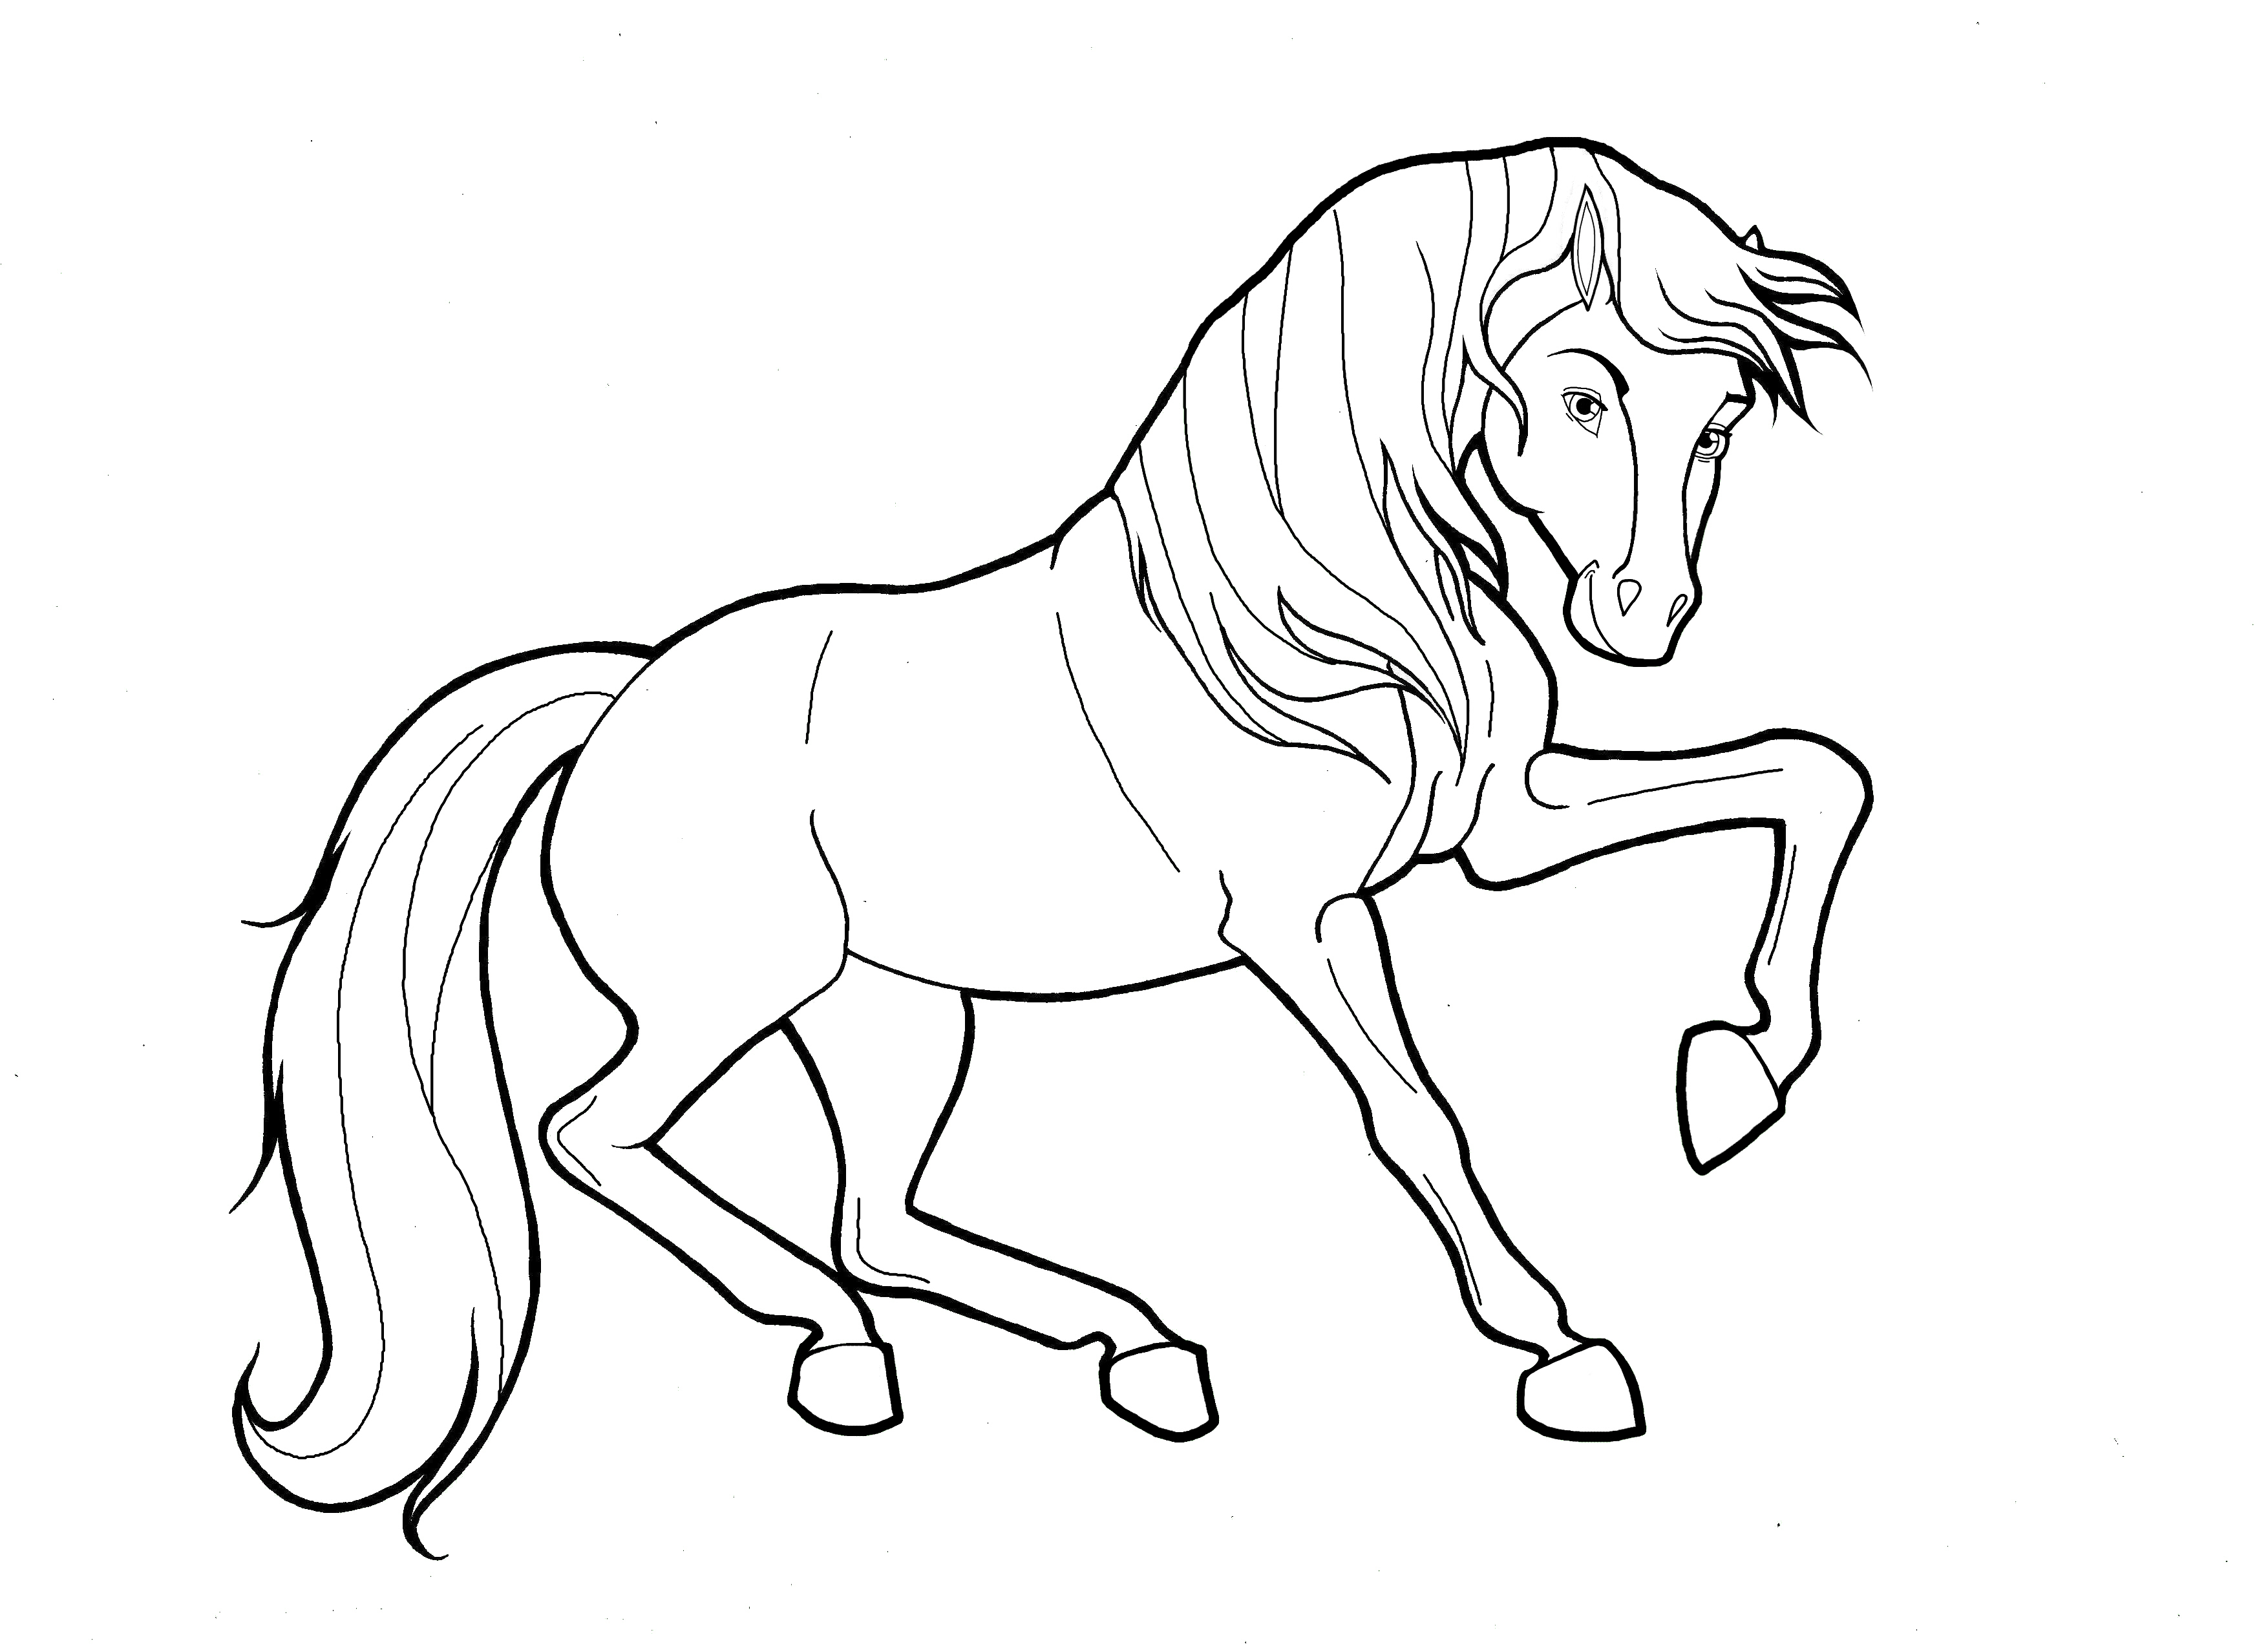 wild horses coloring pages wild horse coloring pages at getcoloringscom free coloring wild horses pages